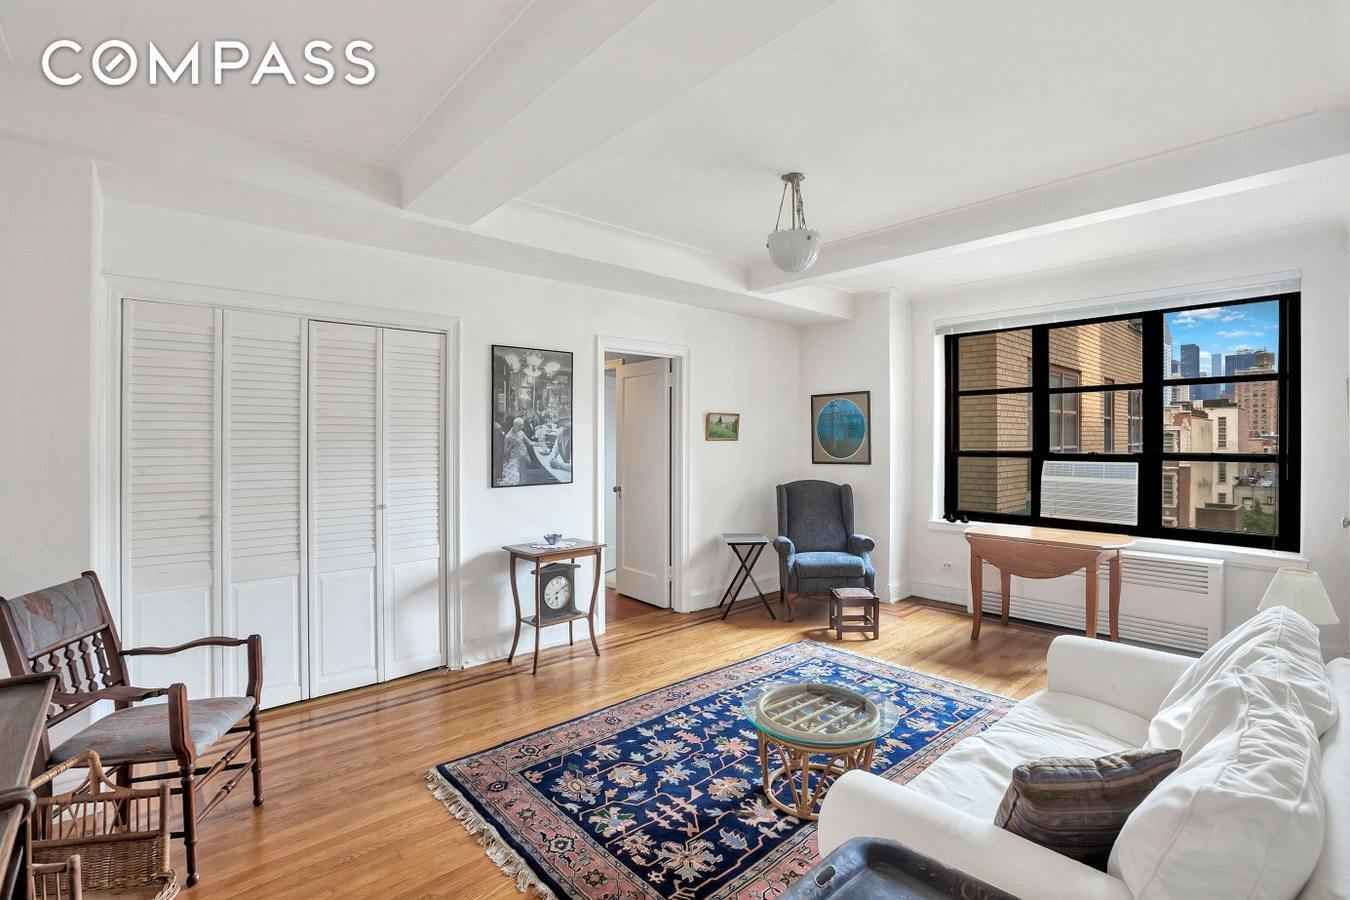 Apartment for sale at 235 East 22nd Street, Apt 10-R